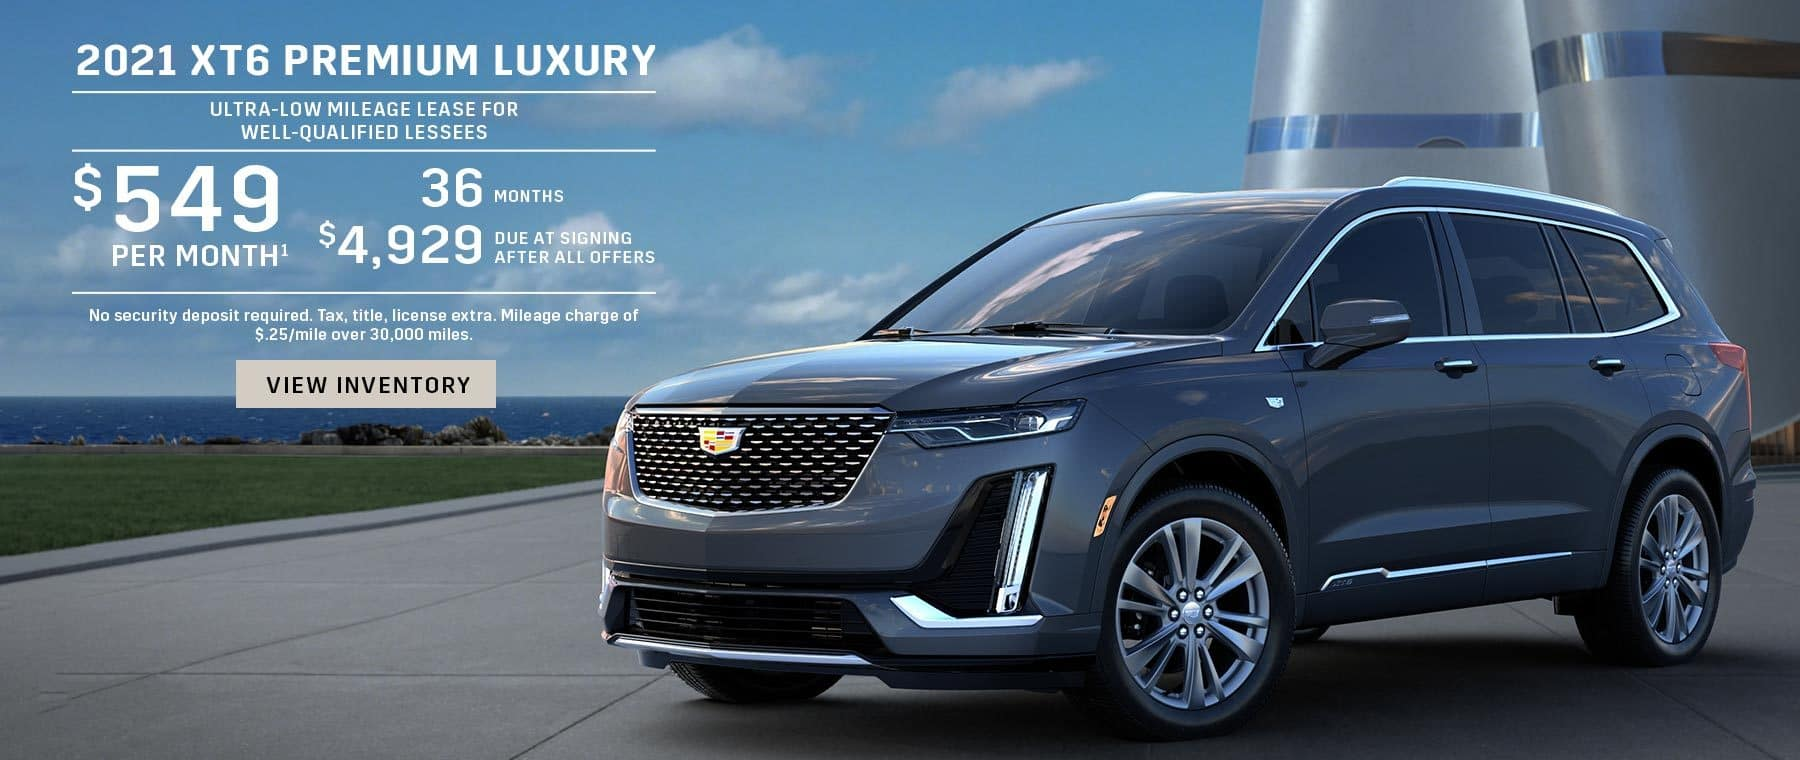 2021 XT6 Premium Luxury. Ultra-low mileage lease for well-qualified lessees. $549 per month 36 months $4,929 due at signing after all offers. No security deposit required. Tax, title, license extra. Mileage charge of $.25/mile over 30,000 miles.